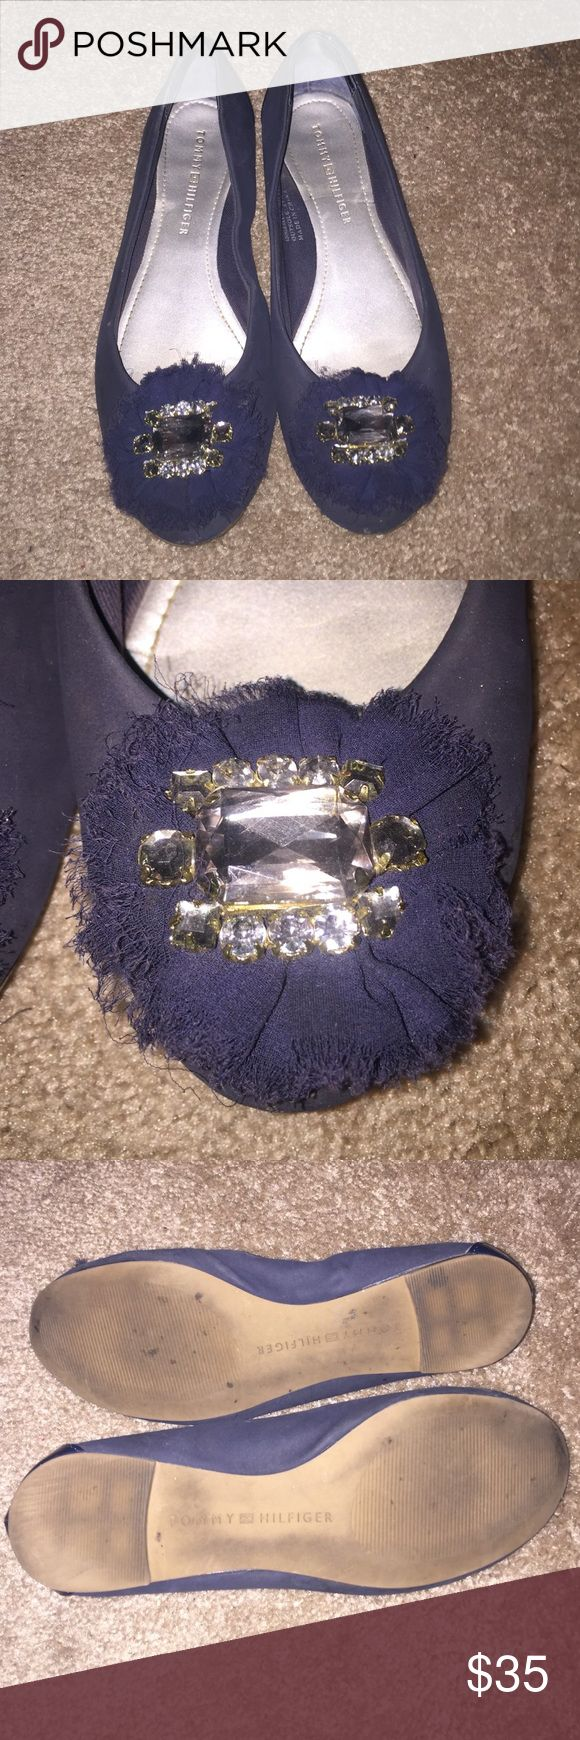 ✨SALE ✨Tommy Hilfiger navy blue jeweled flats Nothing dresses up flats than a nice statement jewel!  These navy blue flats make a statement and add a bit of class to any outfit.  Worn twice in the city, hence the bottom looking worn in so I'm offering a great price!! Tommy Hilfiger Shoes Flats & Loafers